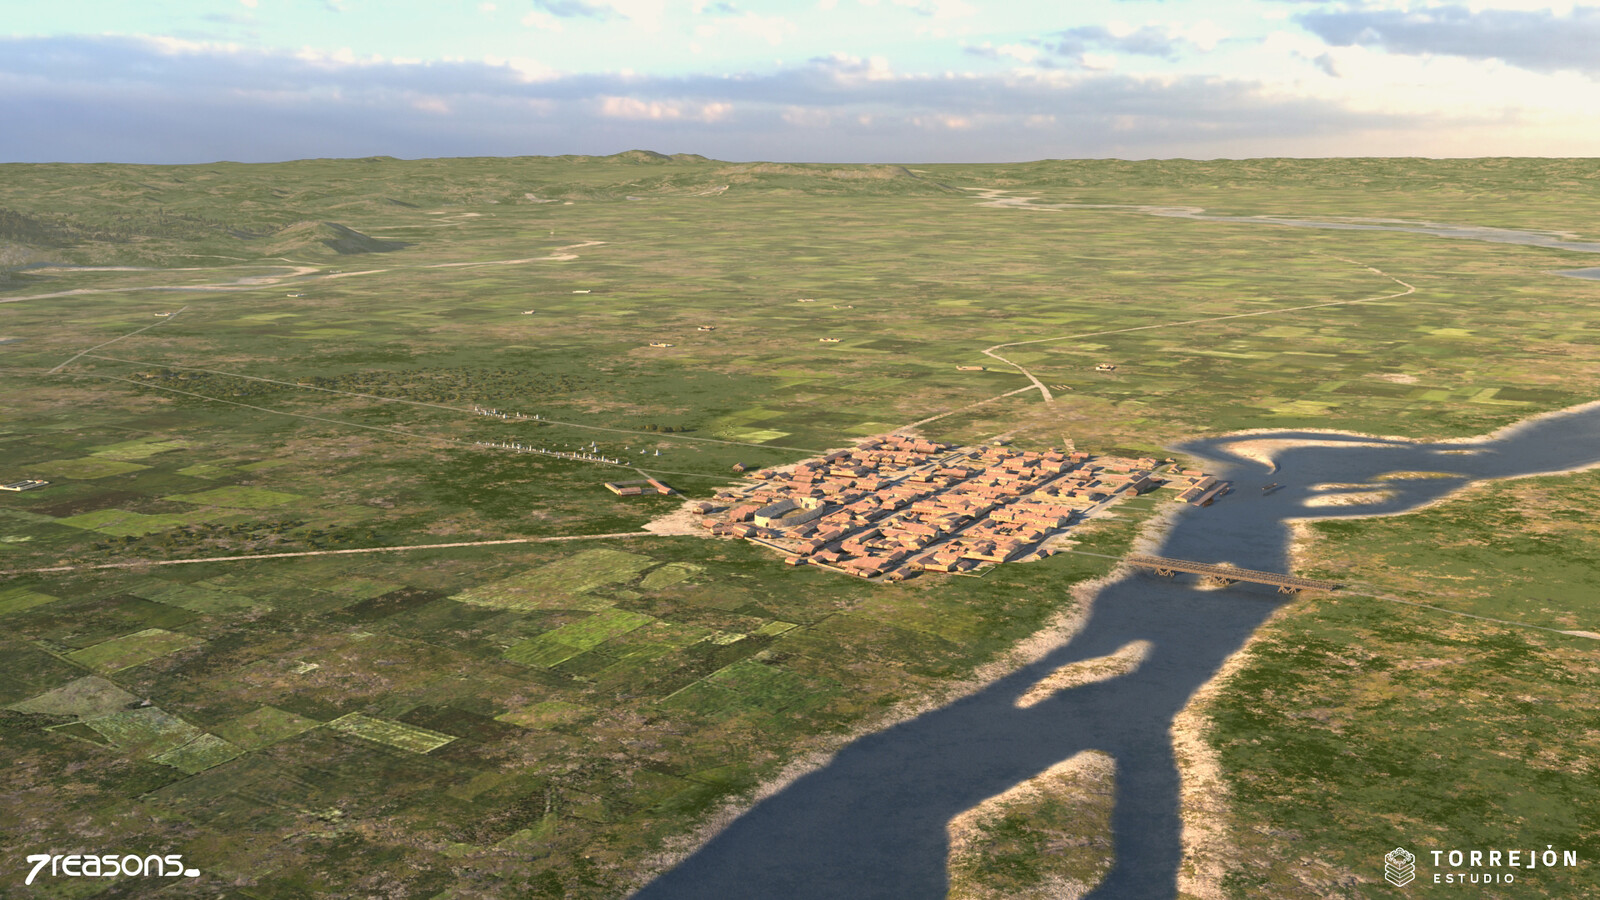 3D visualisation of Flavia Solva and its landscape in Roman times.